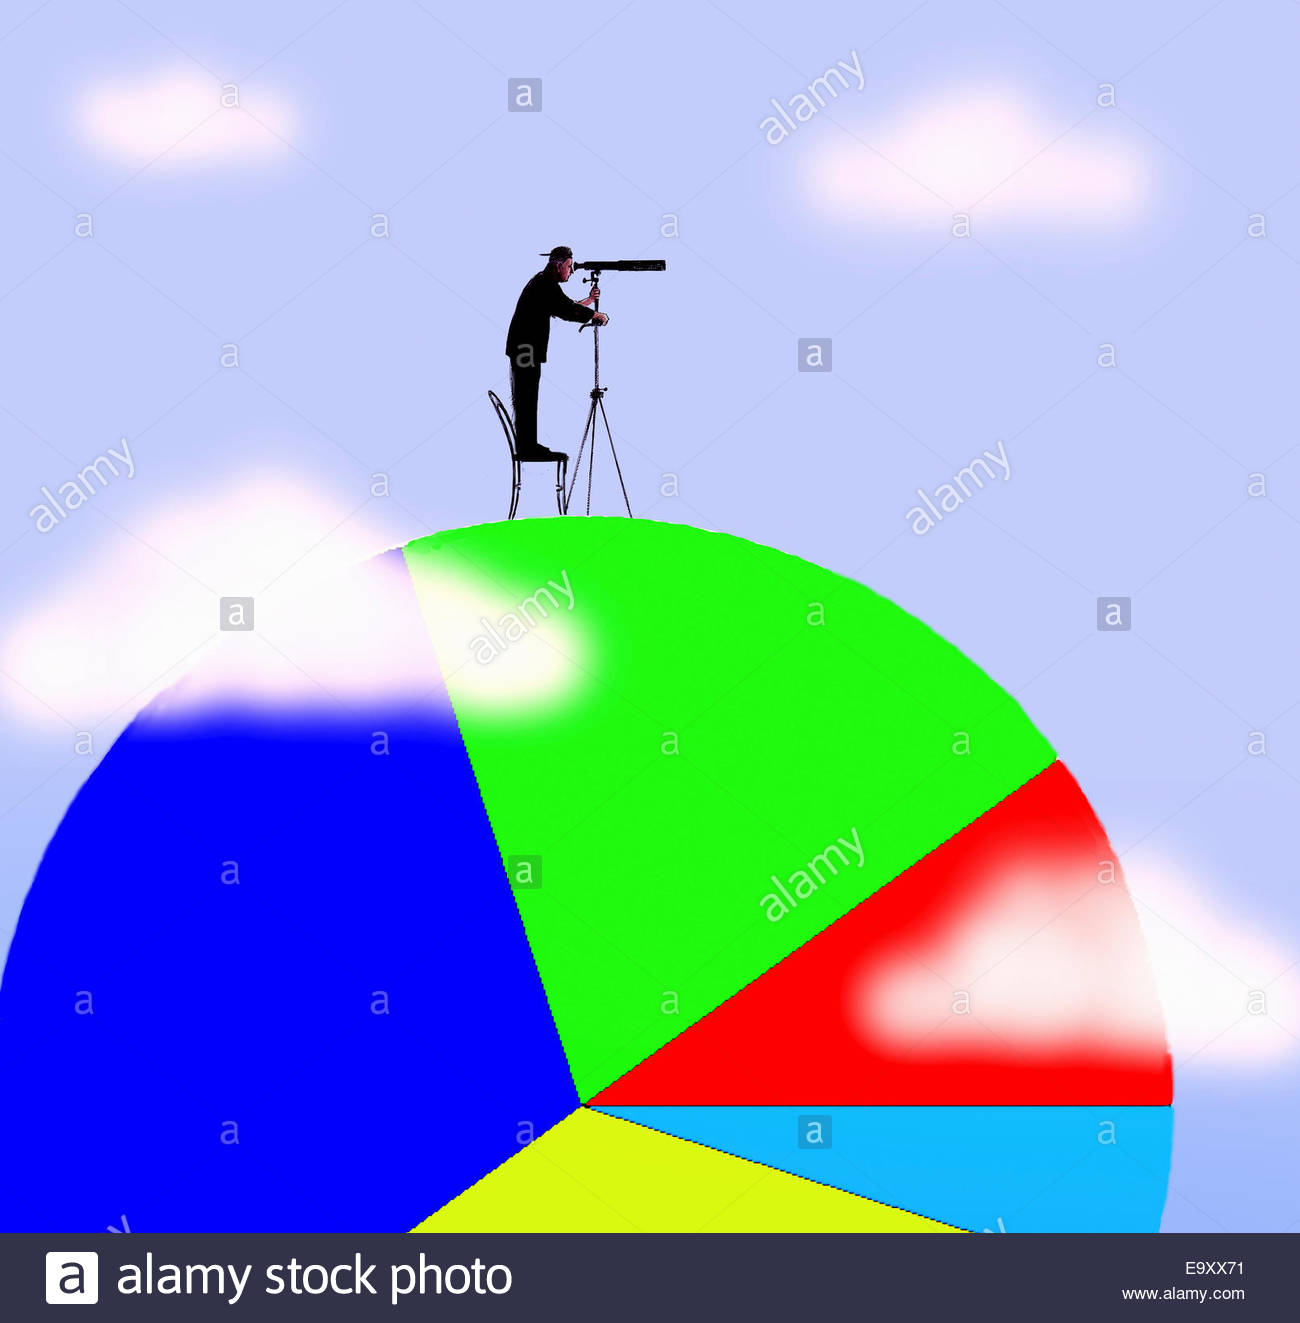 Man looking through telescope standing on top of large pie chart - Stock Image